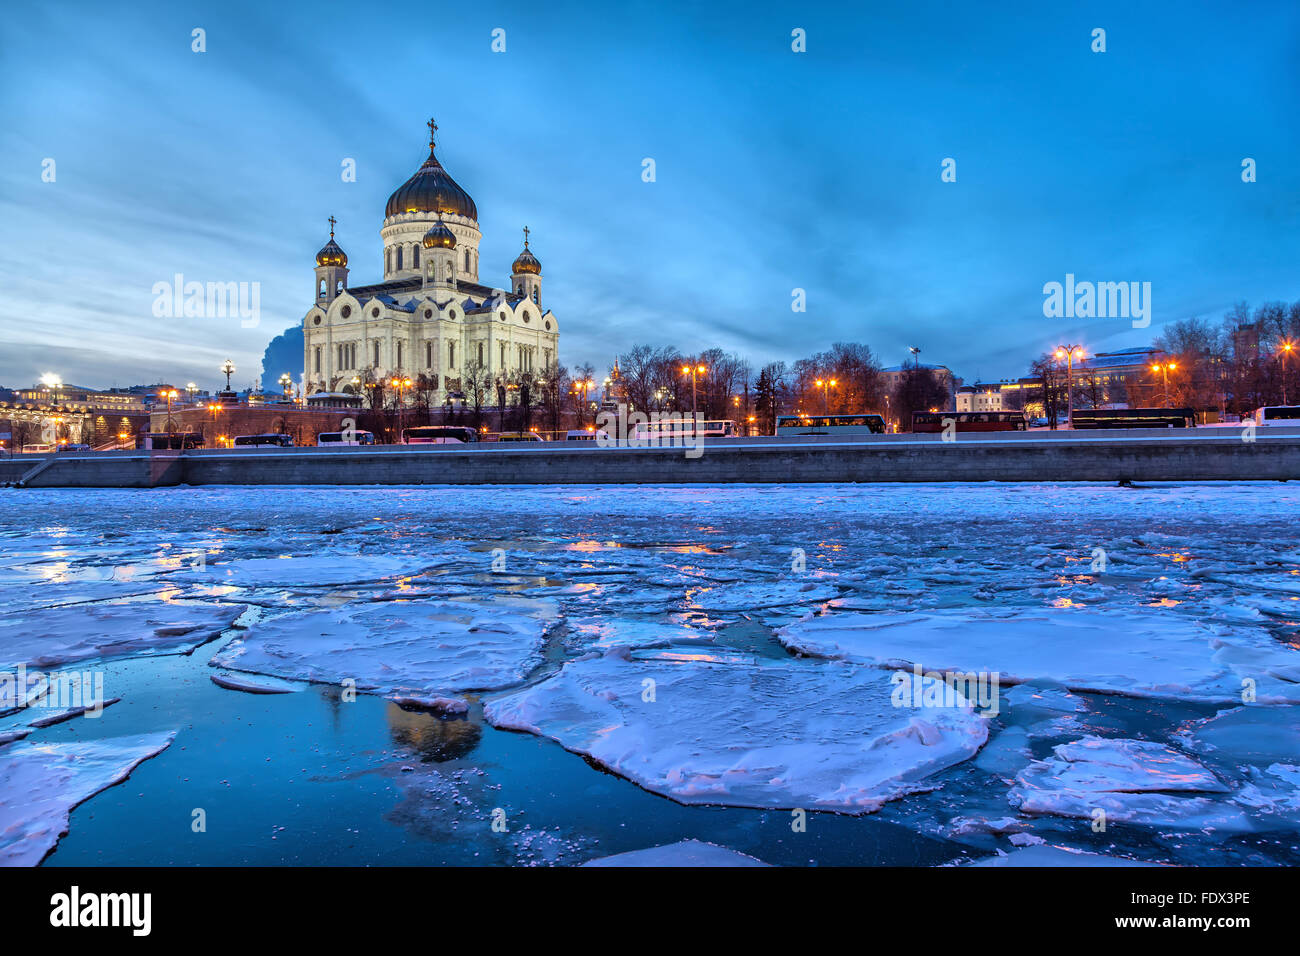 Floe on the Moscow River with Christ the Savior Cathedral on background on a winter evening, Moscow, Russia - Stock Image